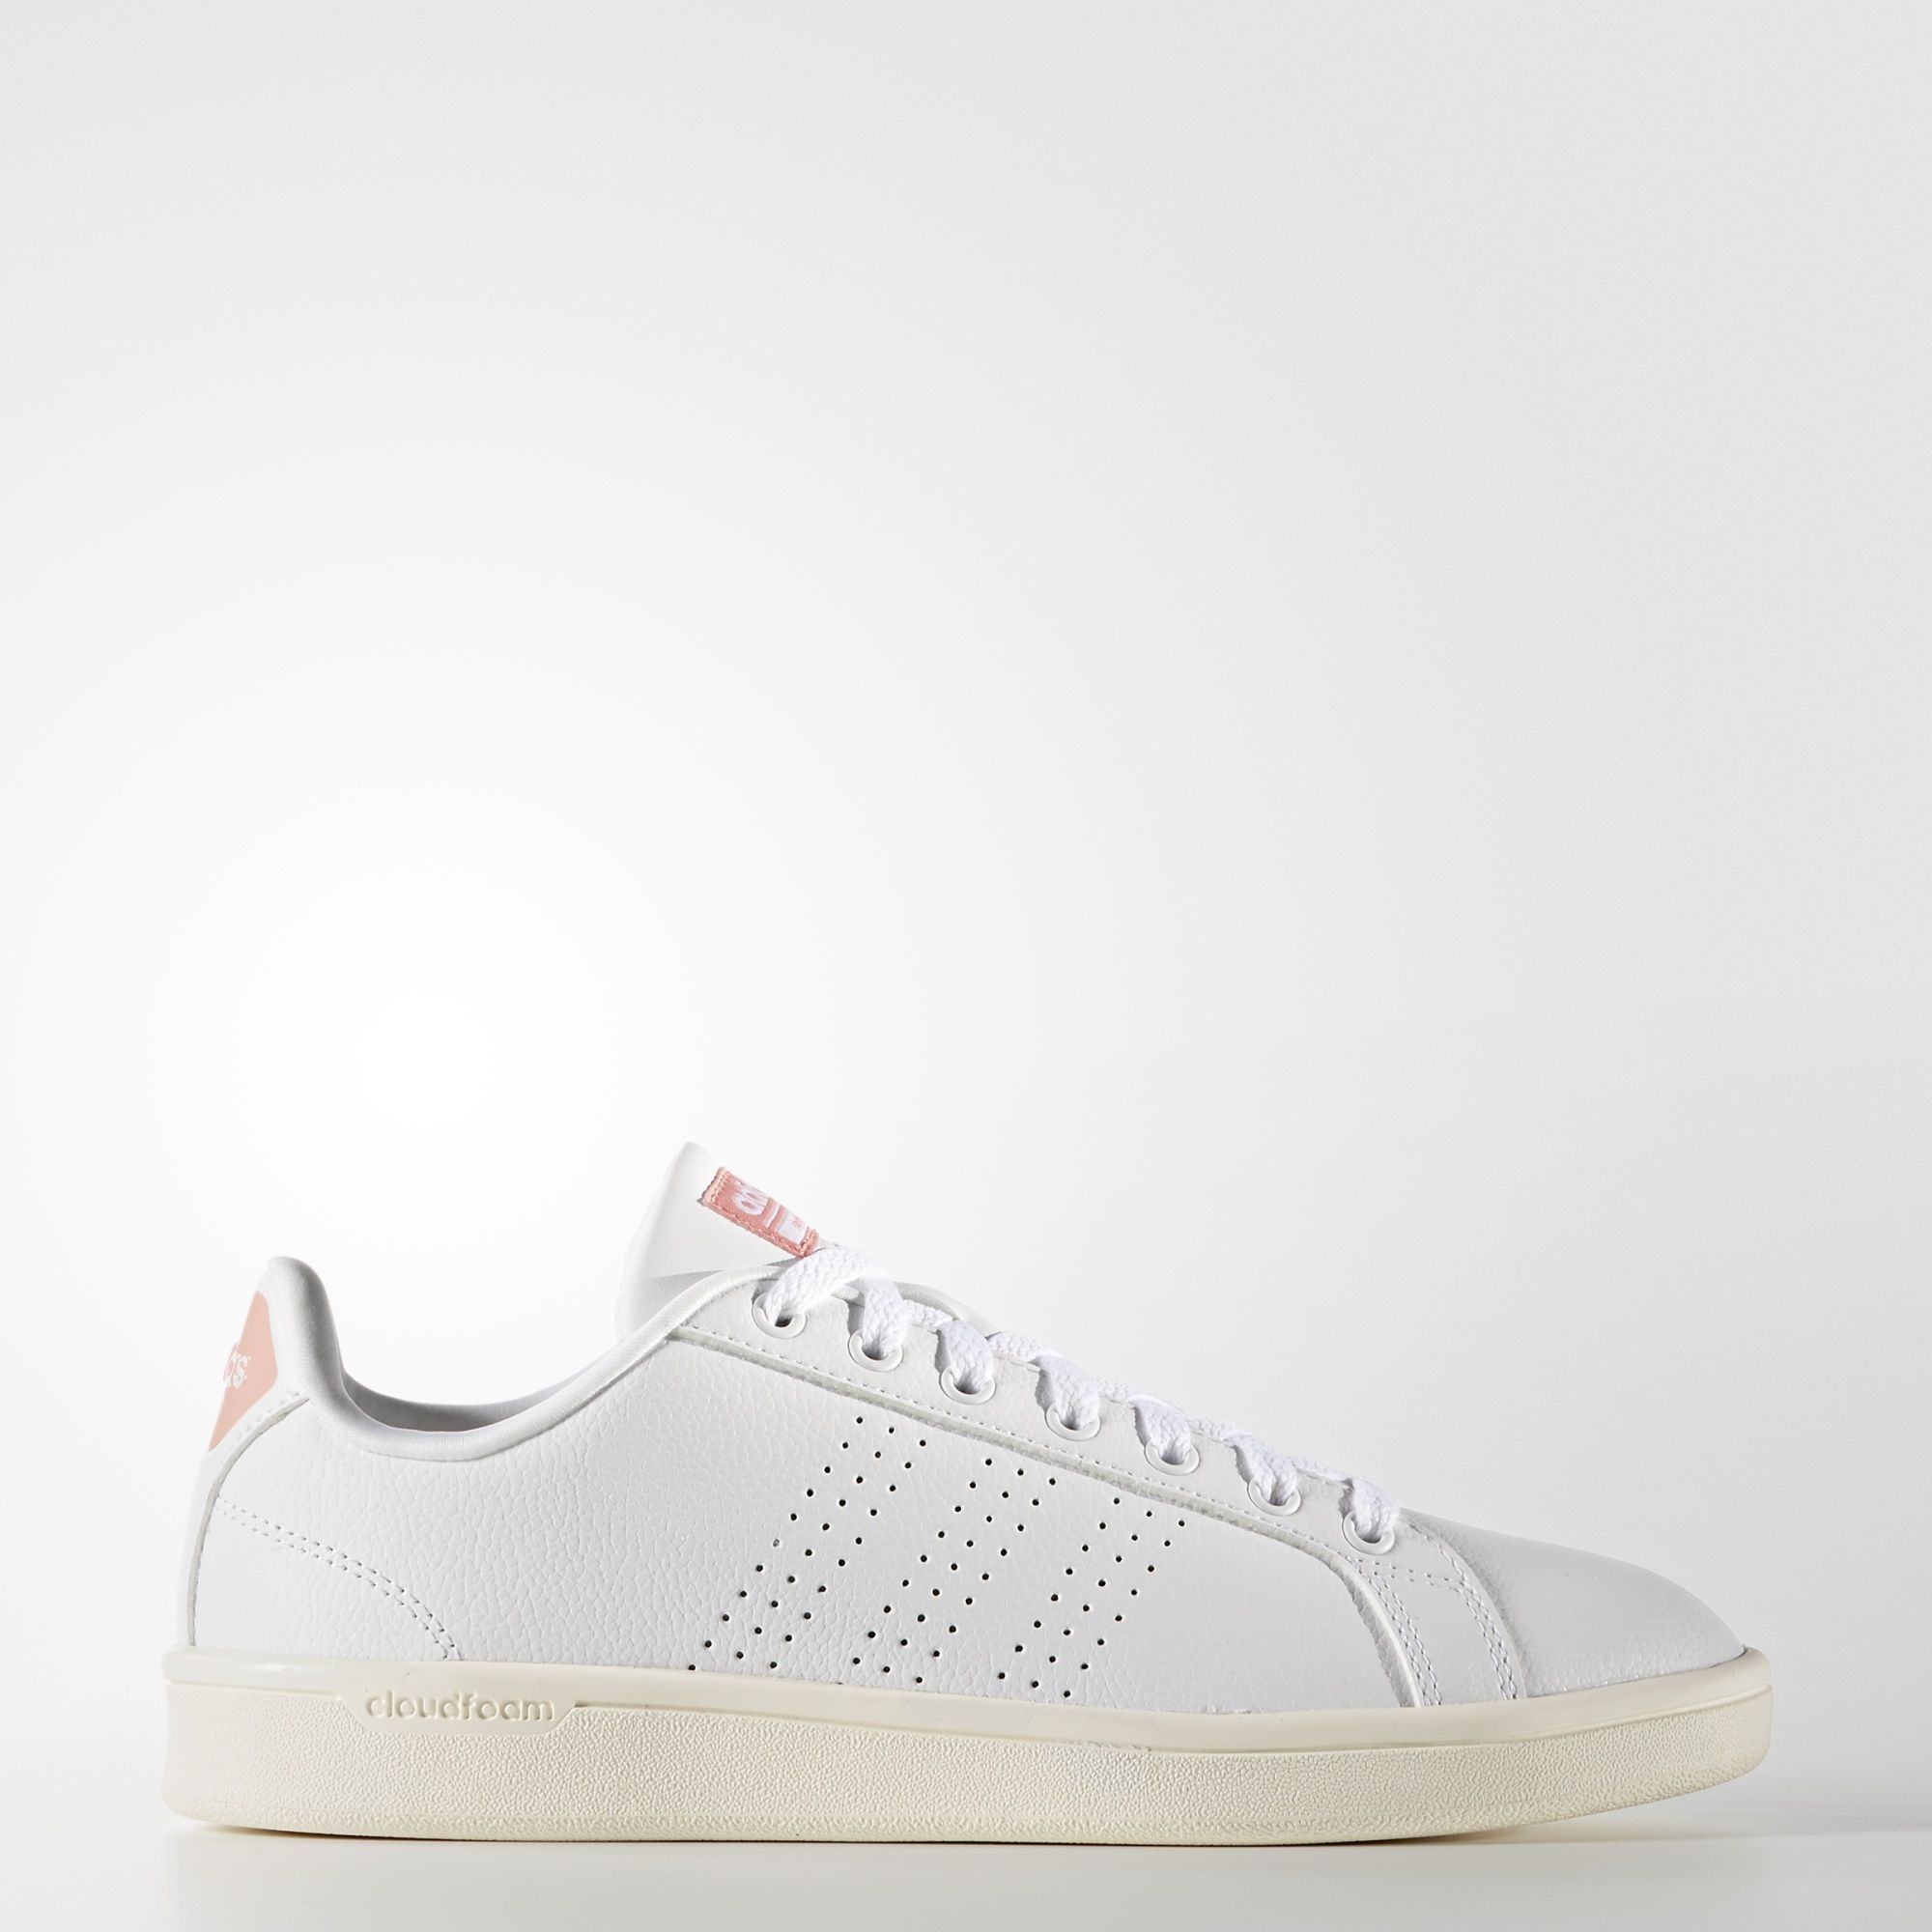 adidas superstar white and green adidas shoes women black cloudfoam